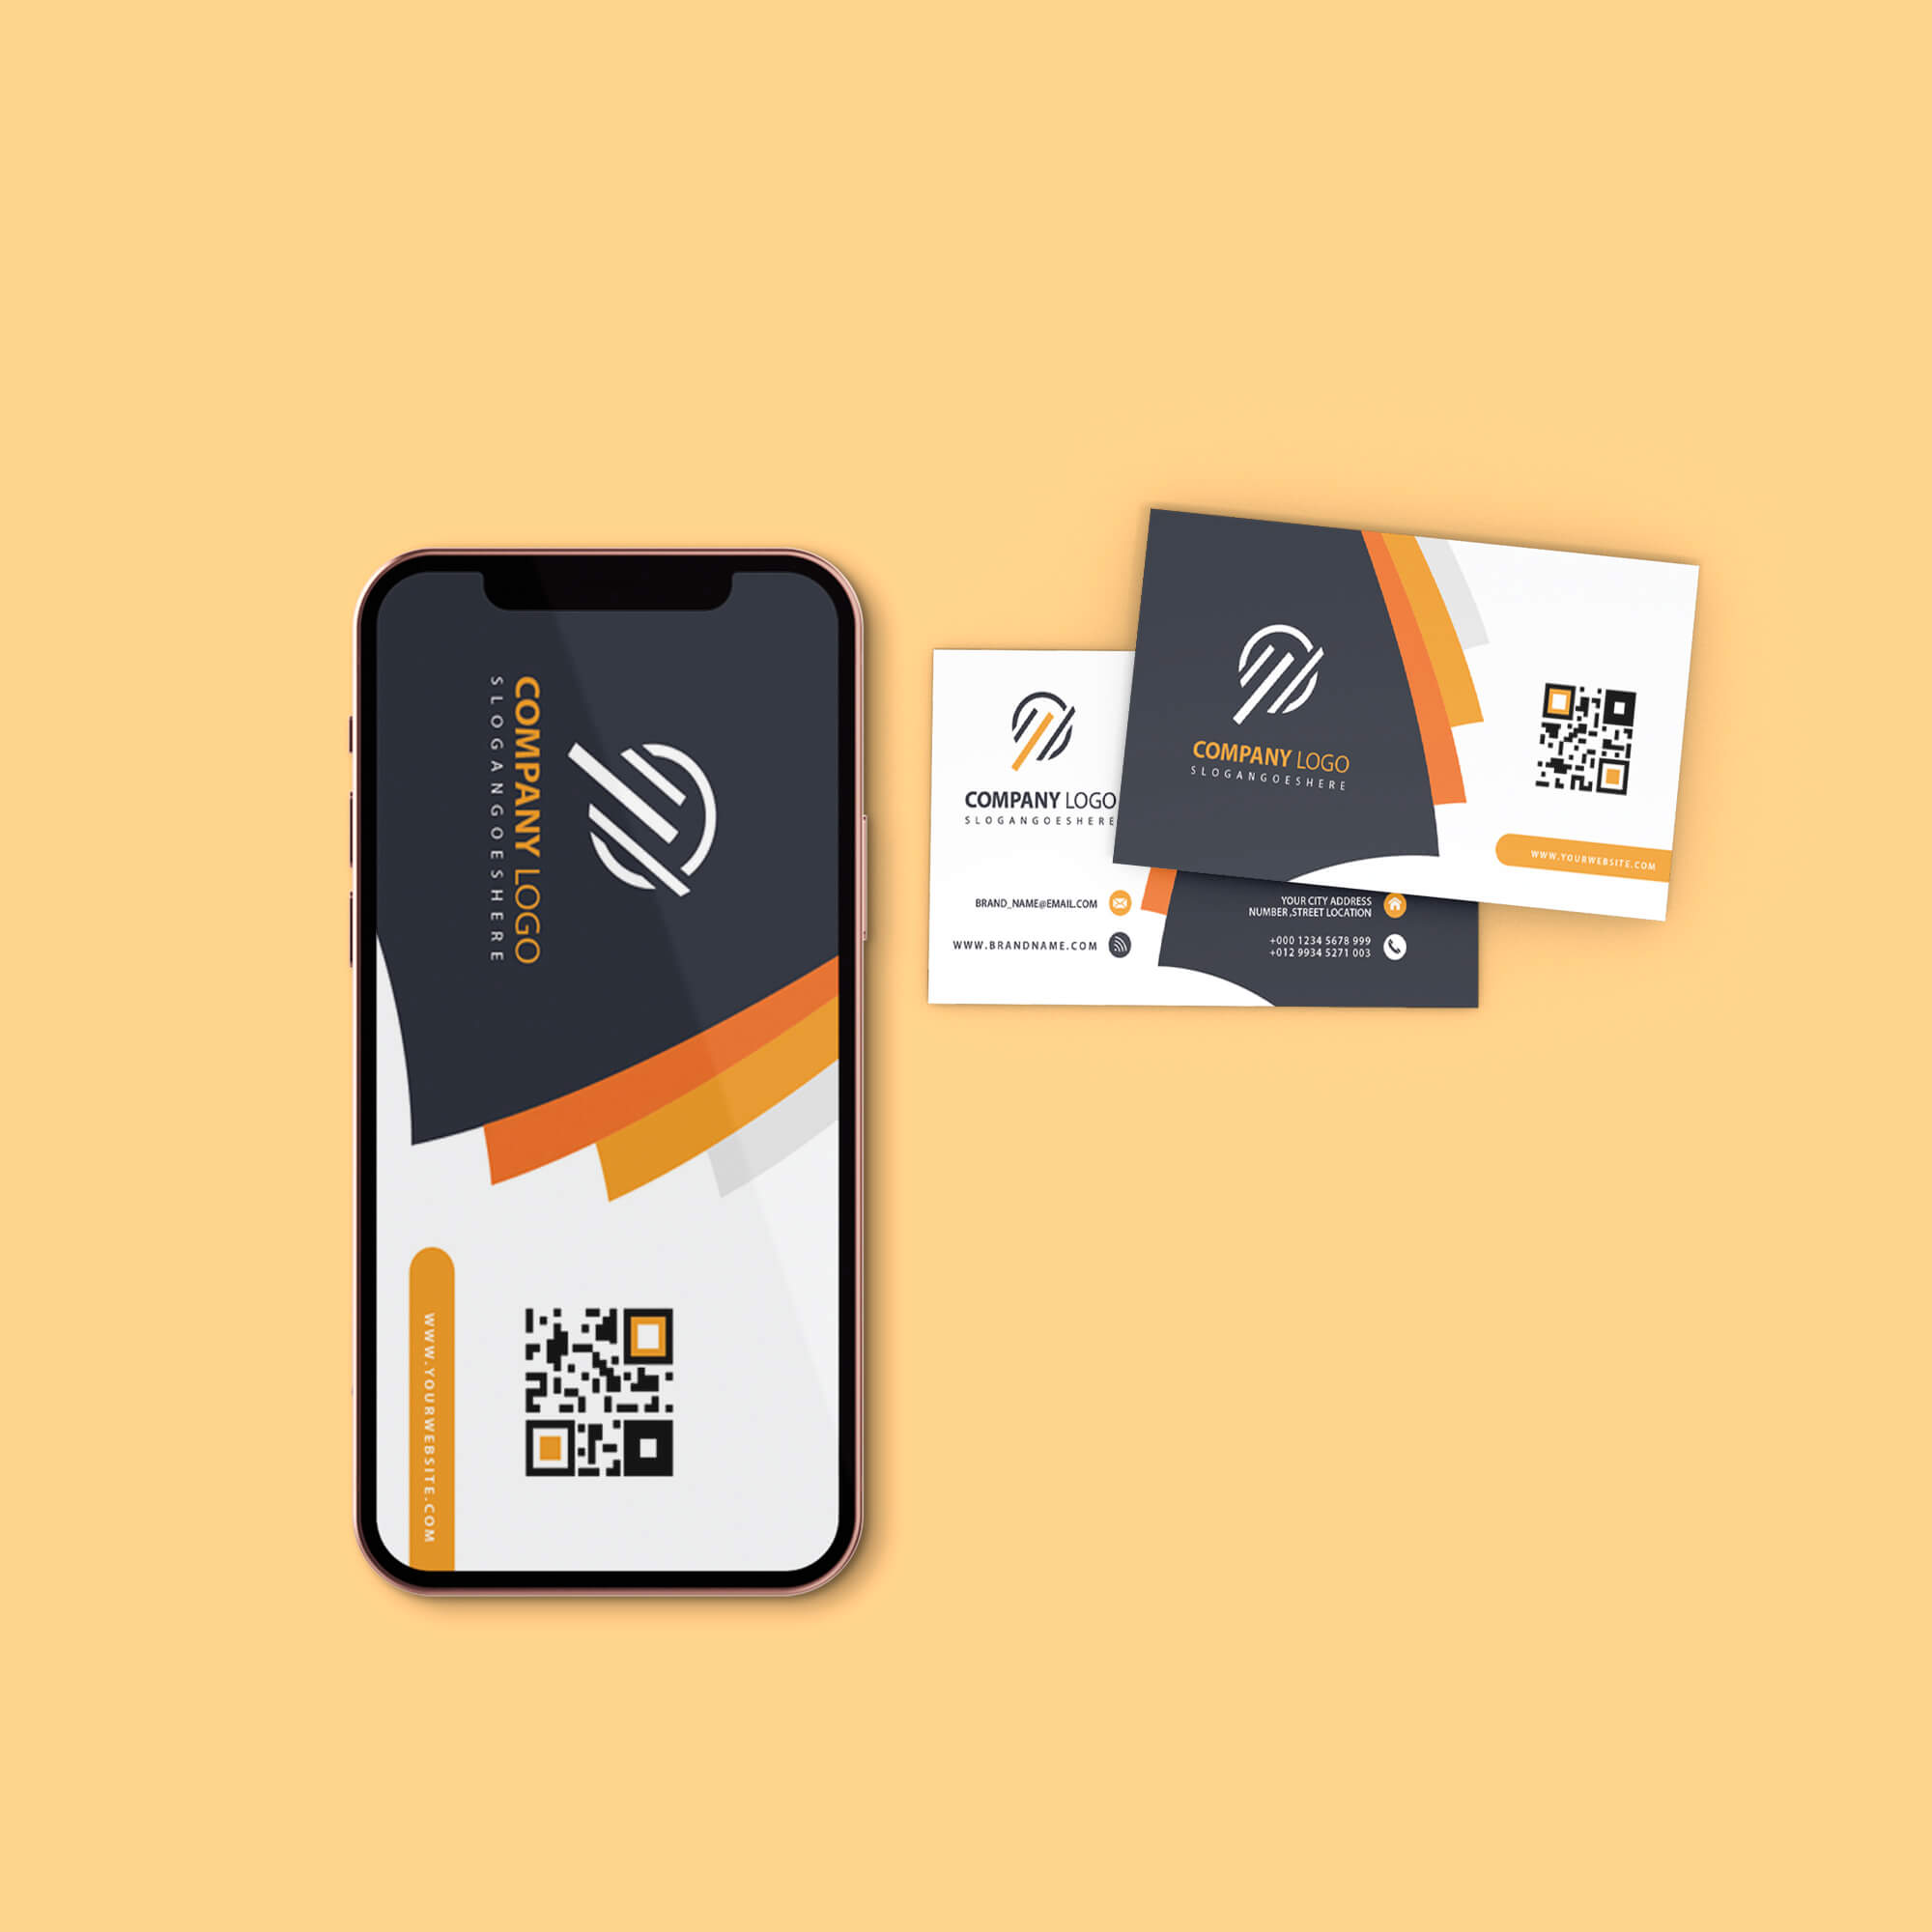 Design Free Card And Phone Mockup PSD Template